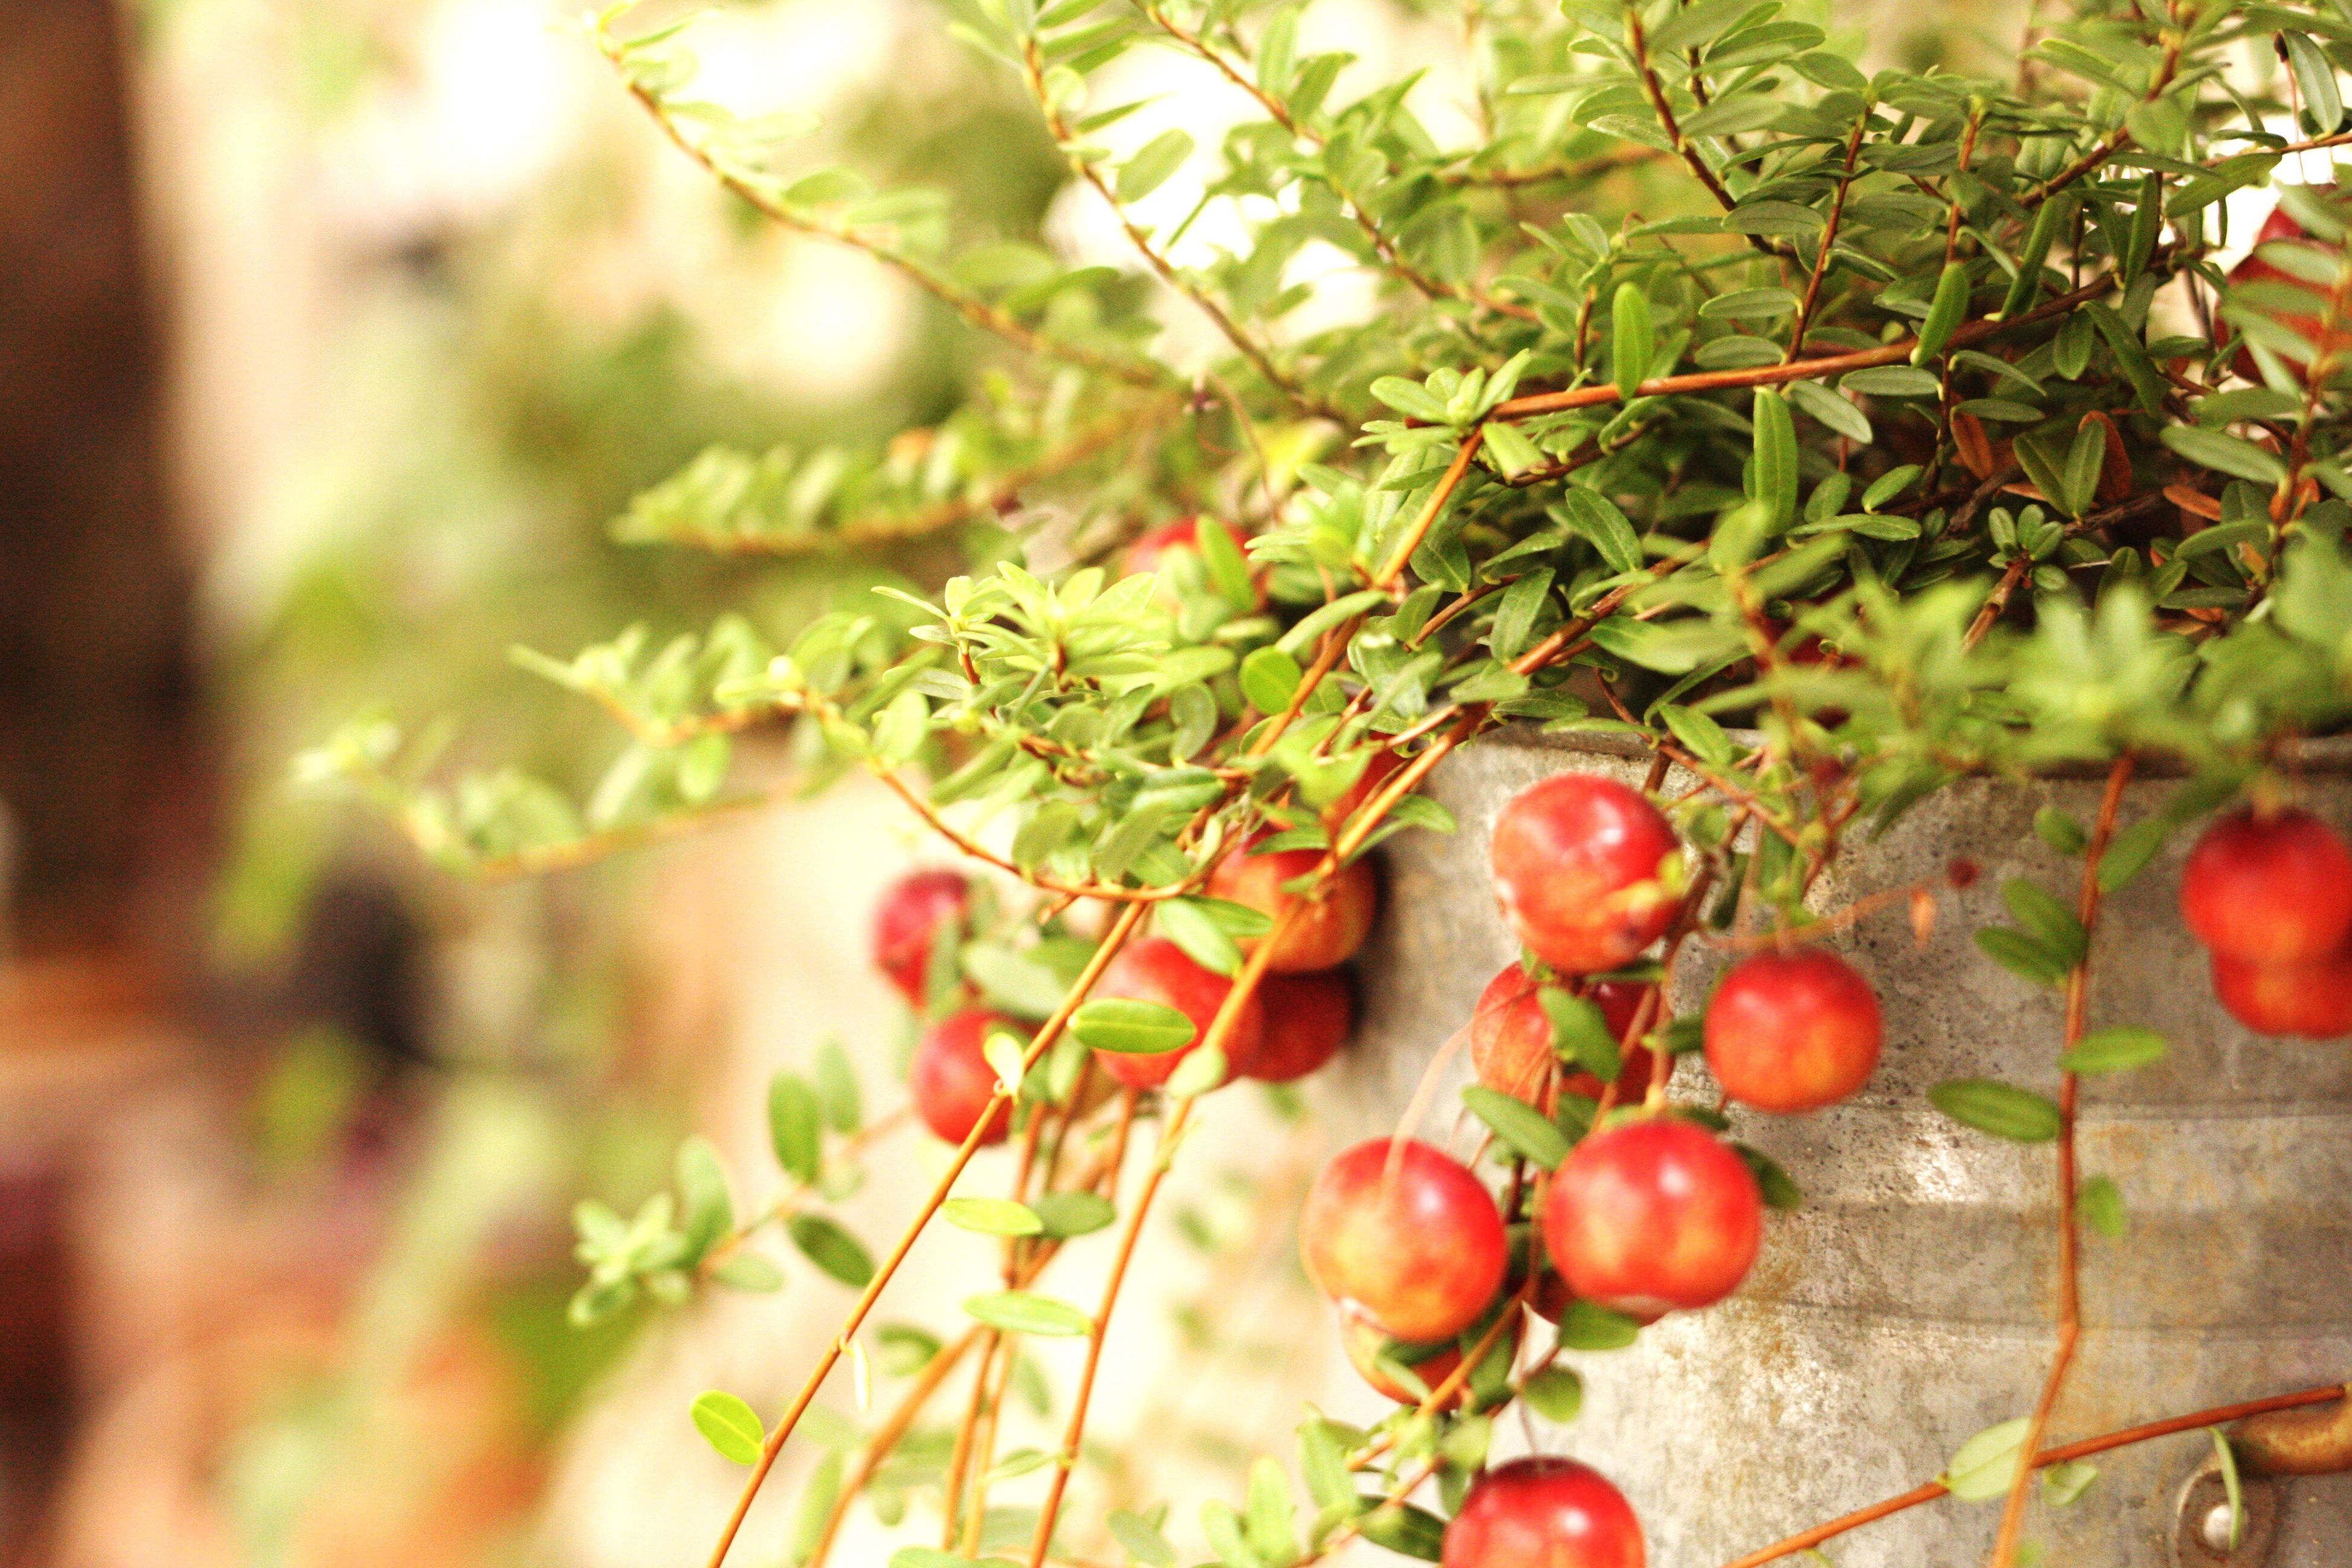 fruit, food and drink, food, healthy eating, growth, freshness, red, leaf, close-up, focus on foreground, branch, ripe, tree, nature, plant, growing, stem, berry fruit, selective focus, day